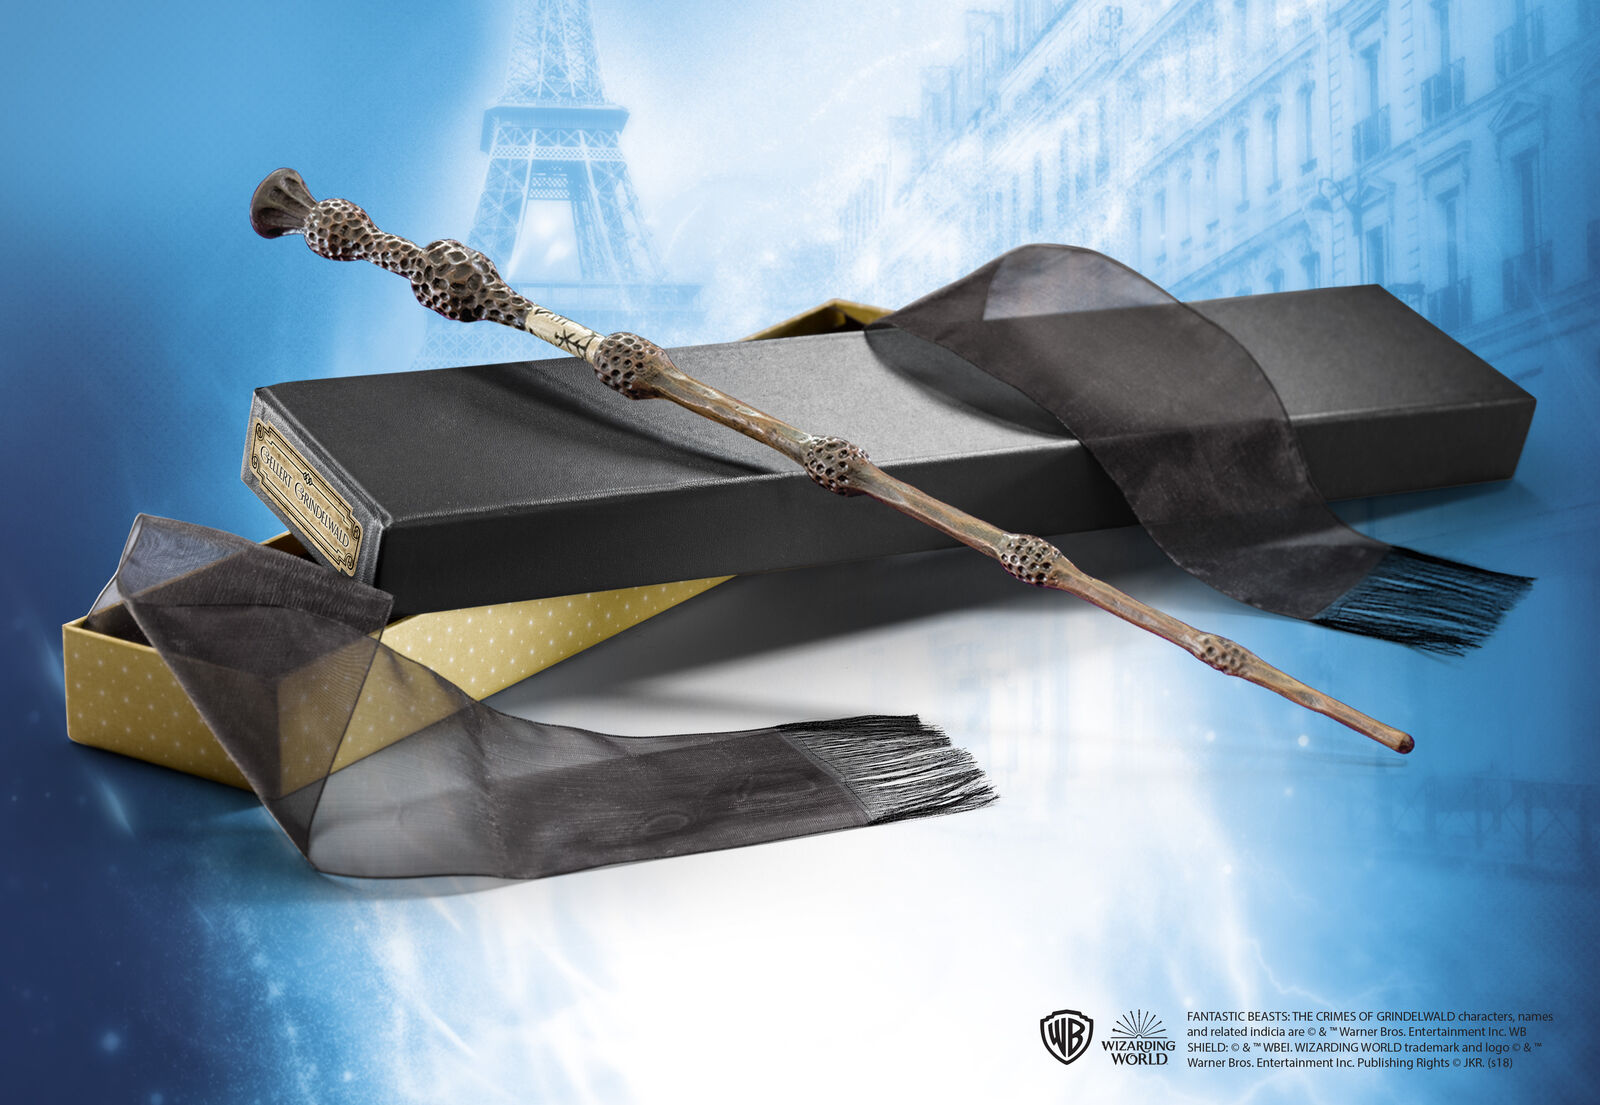 Fantastic Beasts Gellert Grindelwald Magic Wand Zauberstab Noble Collection Collection Collection de2275